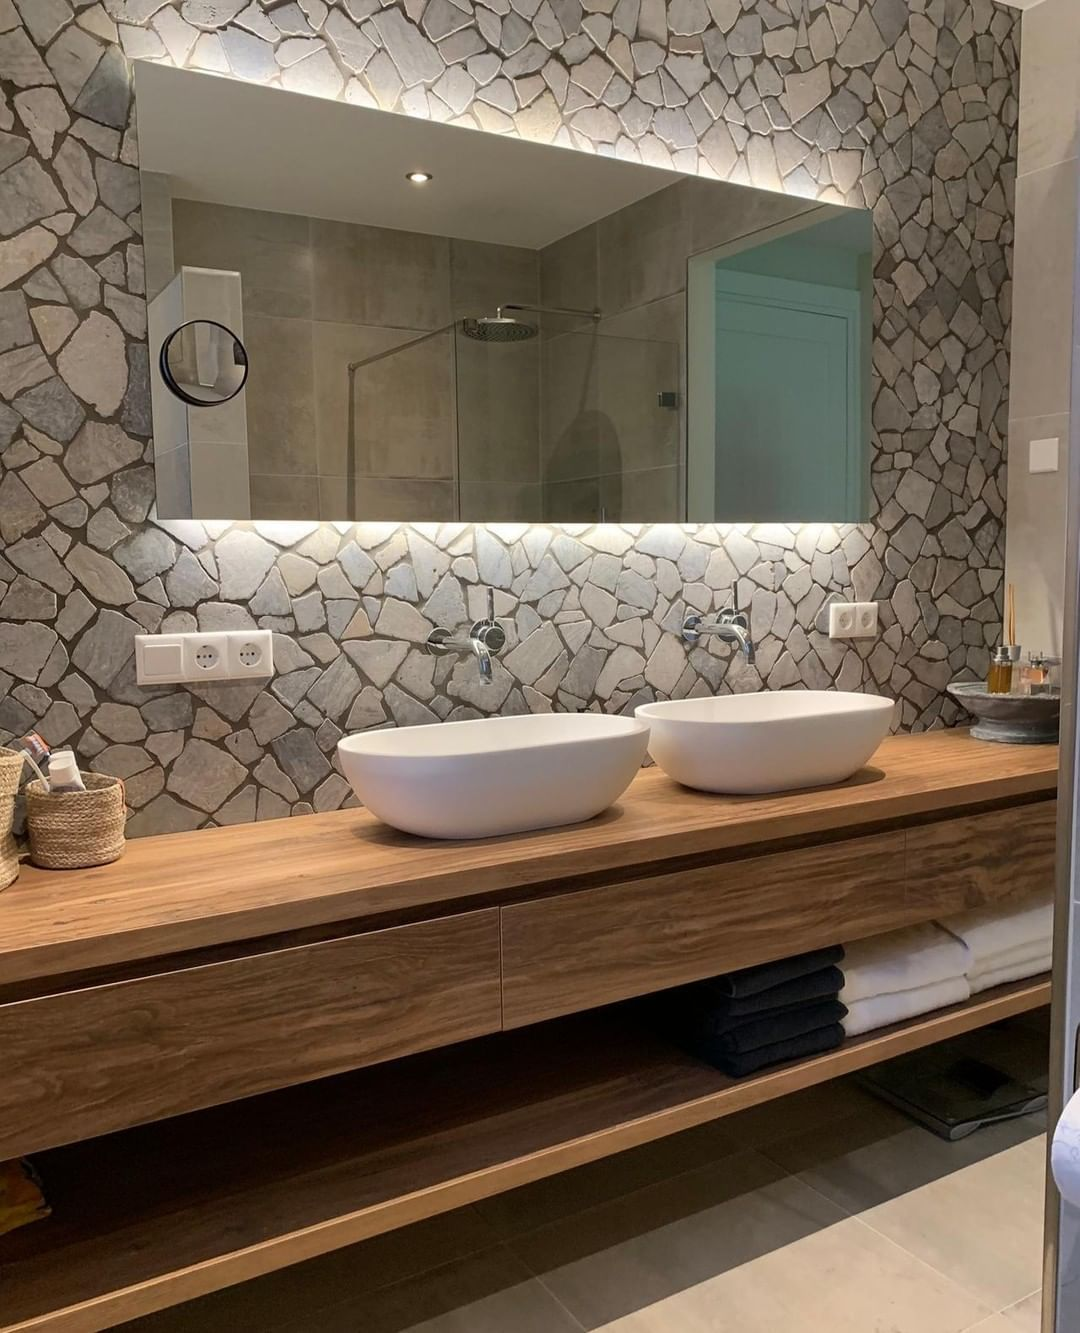 Natuursteen Totaal Bv Auf Instagram Bathroom Inspiration Made By Natuursteentotaal Rij Bathroom Design Luxury Bathroom Farmhouse Style Architecture Bathroom